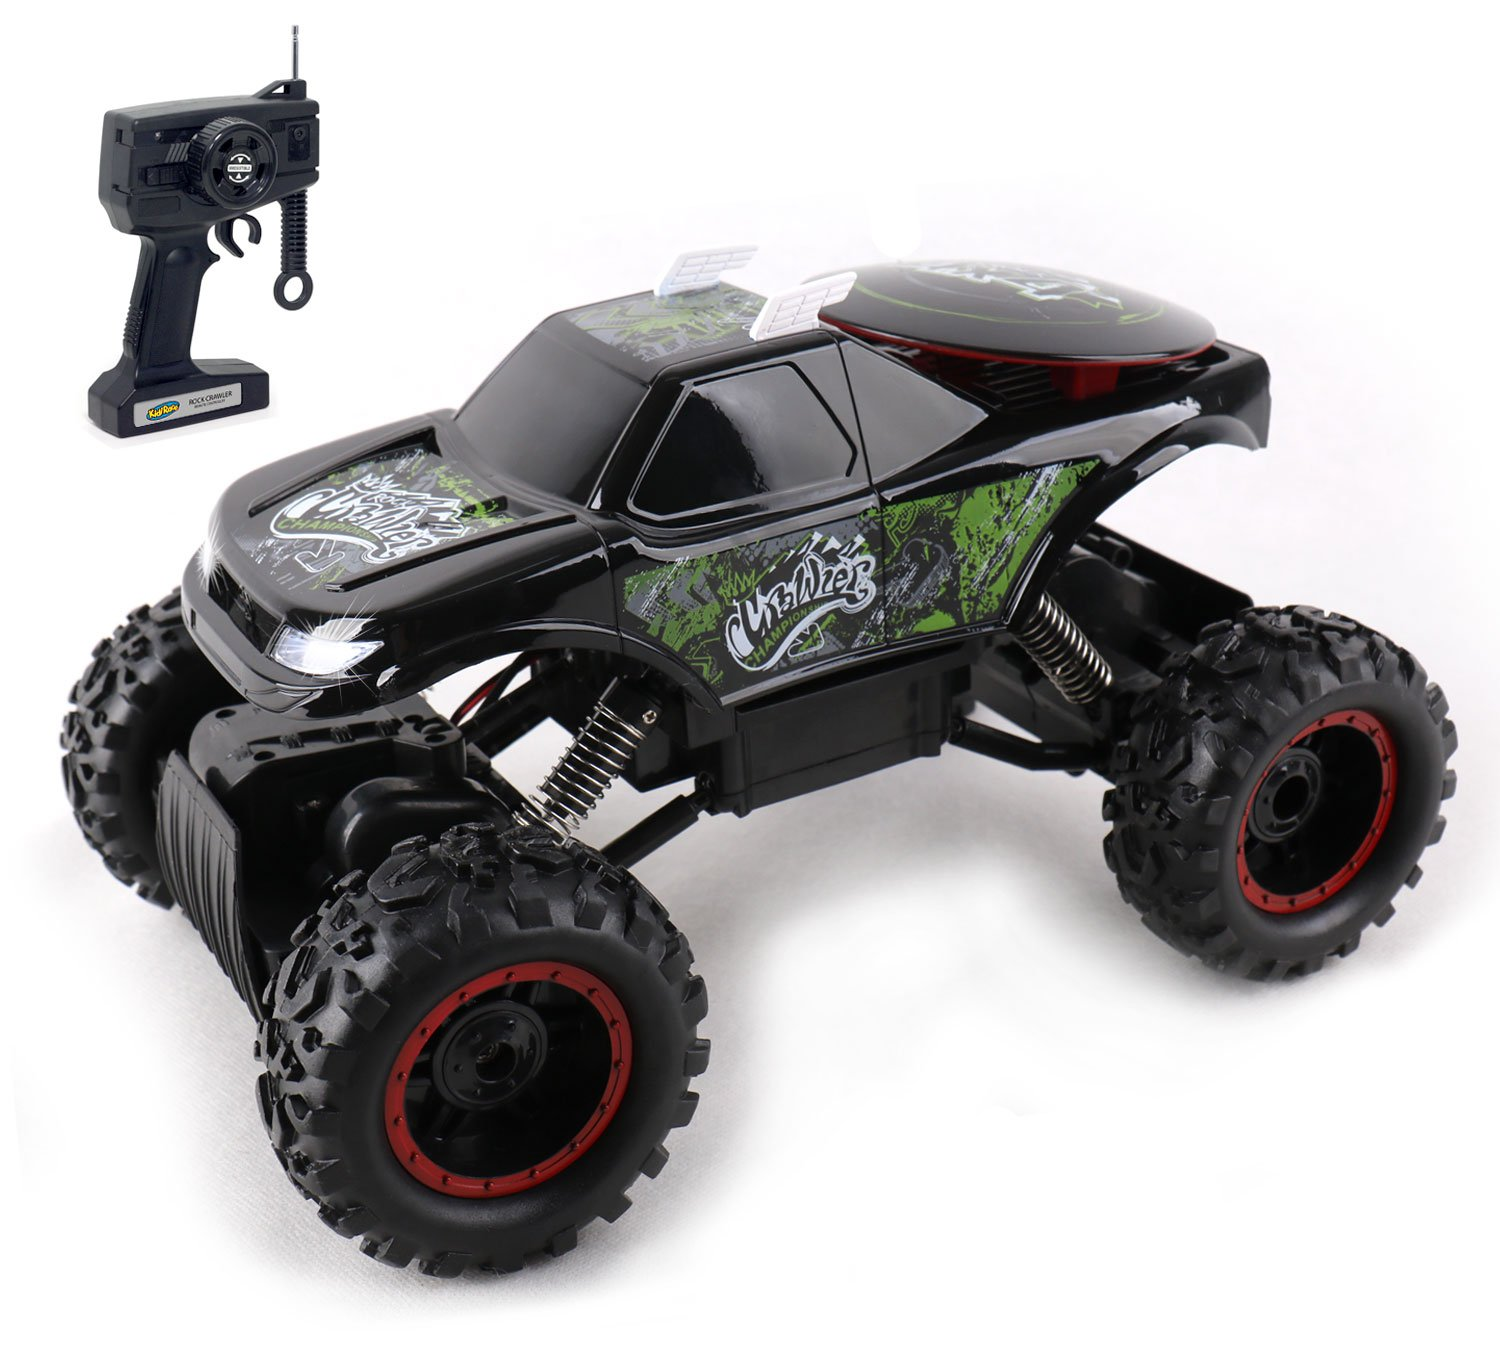 Cheap Tata Motors On Road Price Find Stepper Remote Control Car Get Quotations Kidirace Rock Crawler Black Rc All Terrain With 3 Powerful